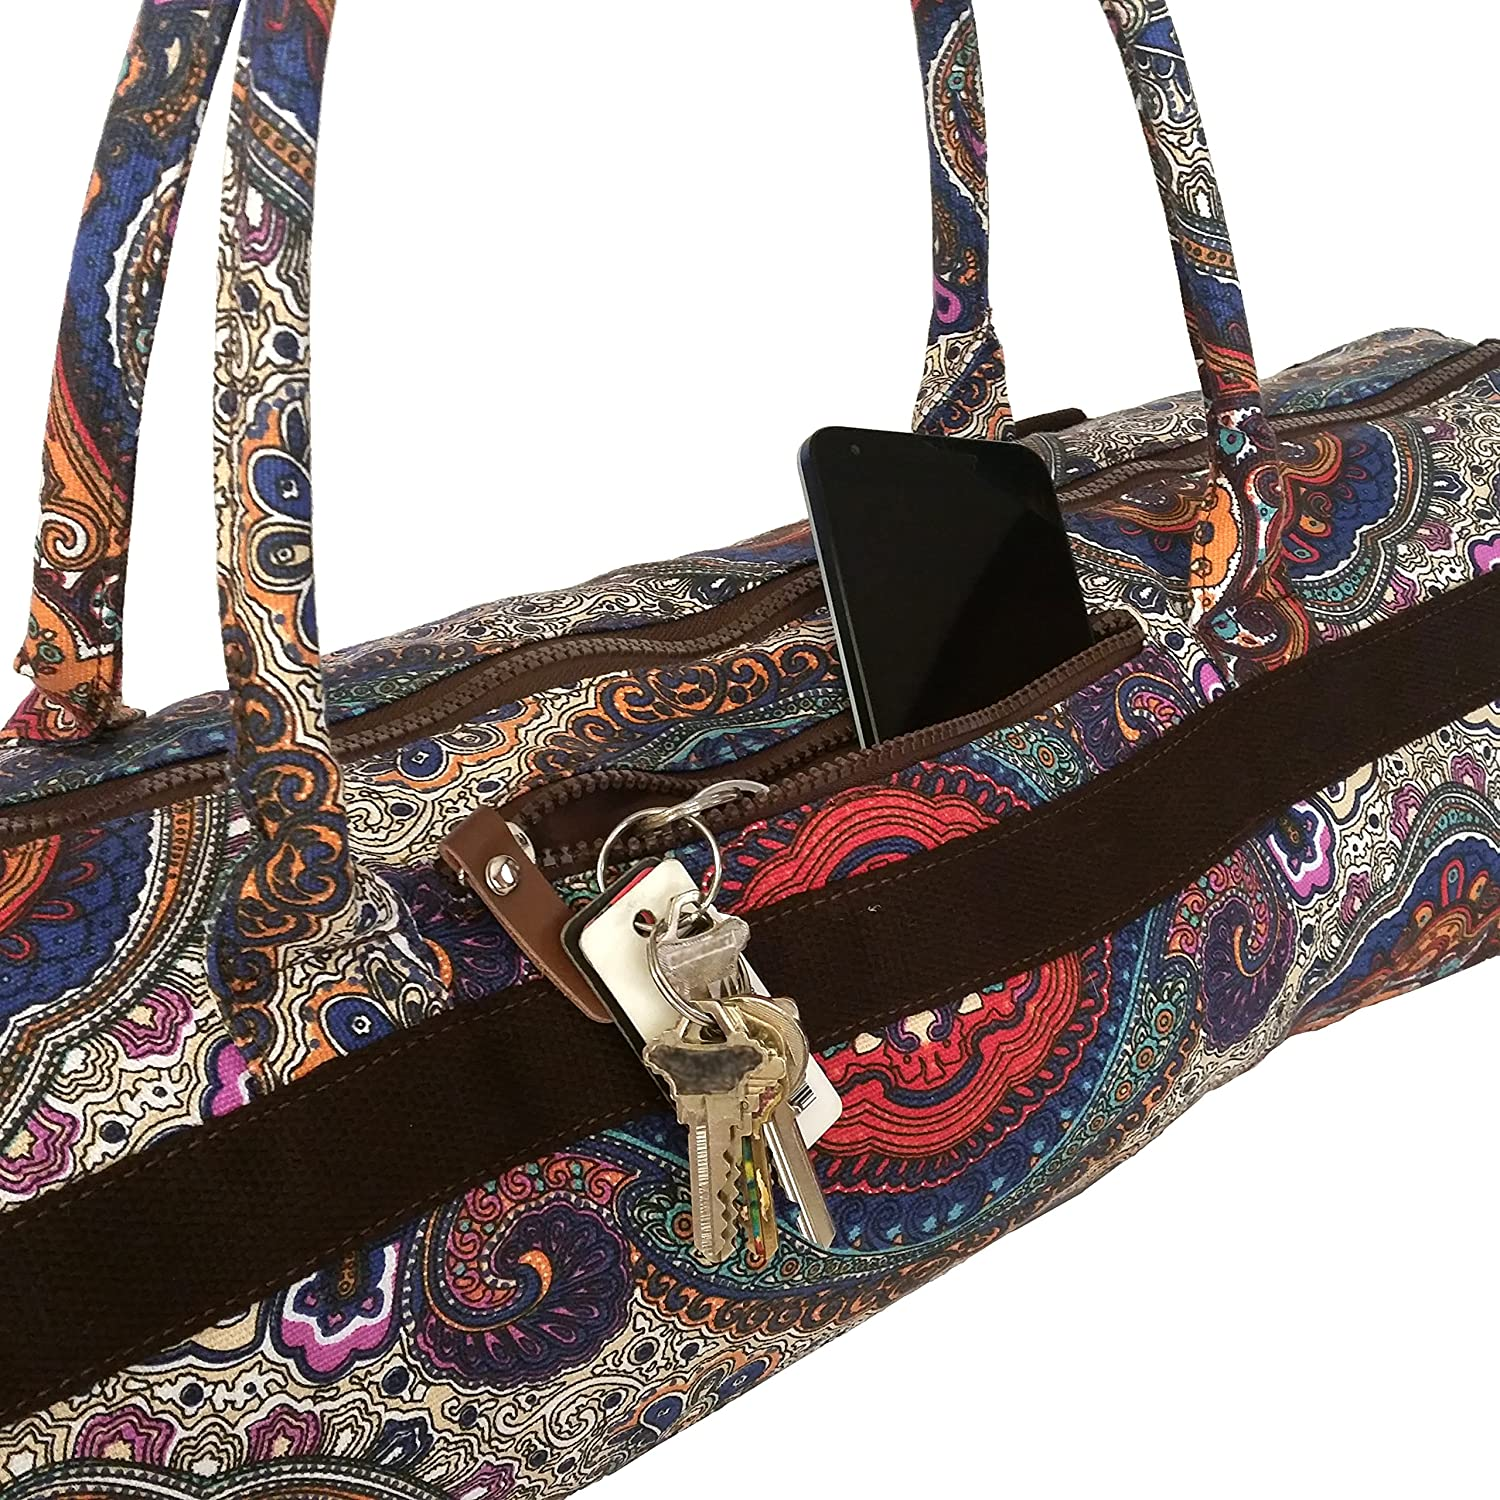 5bbca72343ed Amazon.com : Yoga Mat Bags Carrier Patterned Canvas with Pocket and Zipper  (Celestial) : Sports & Outdoors